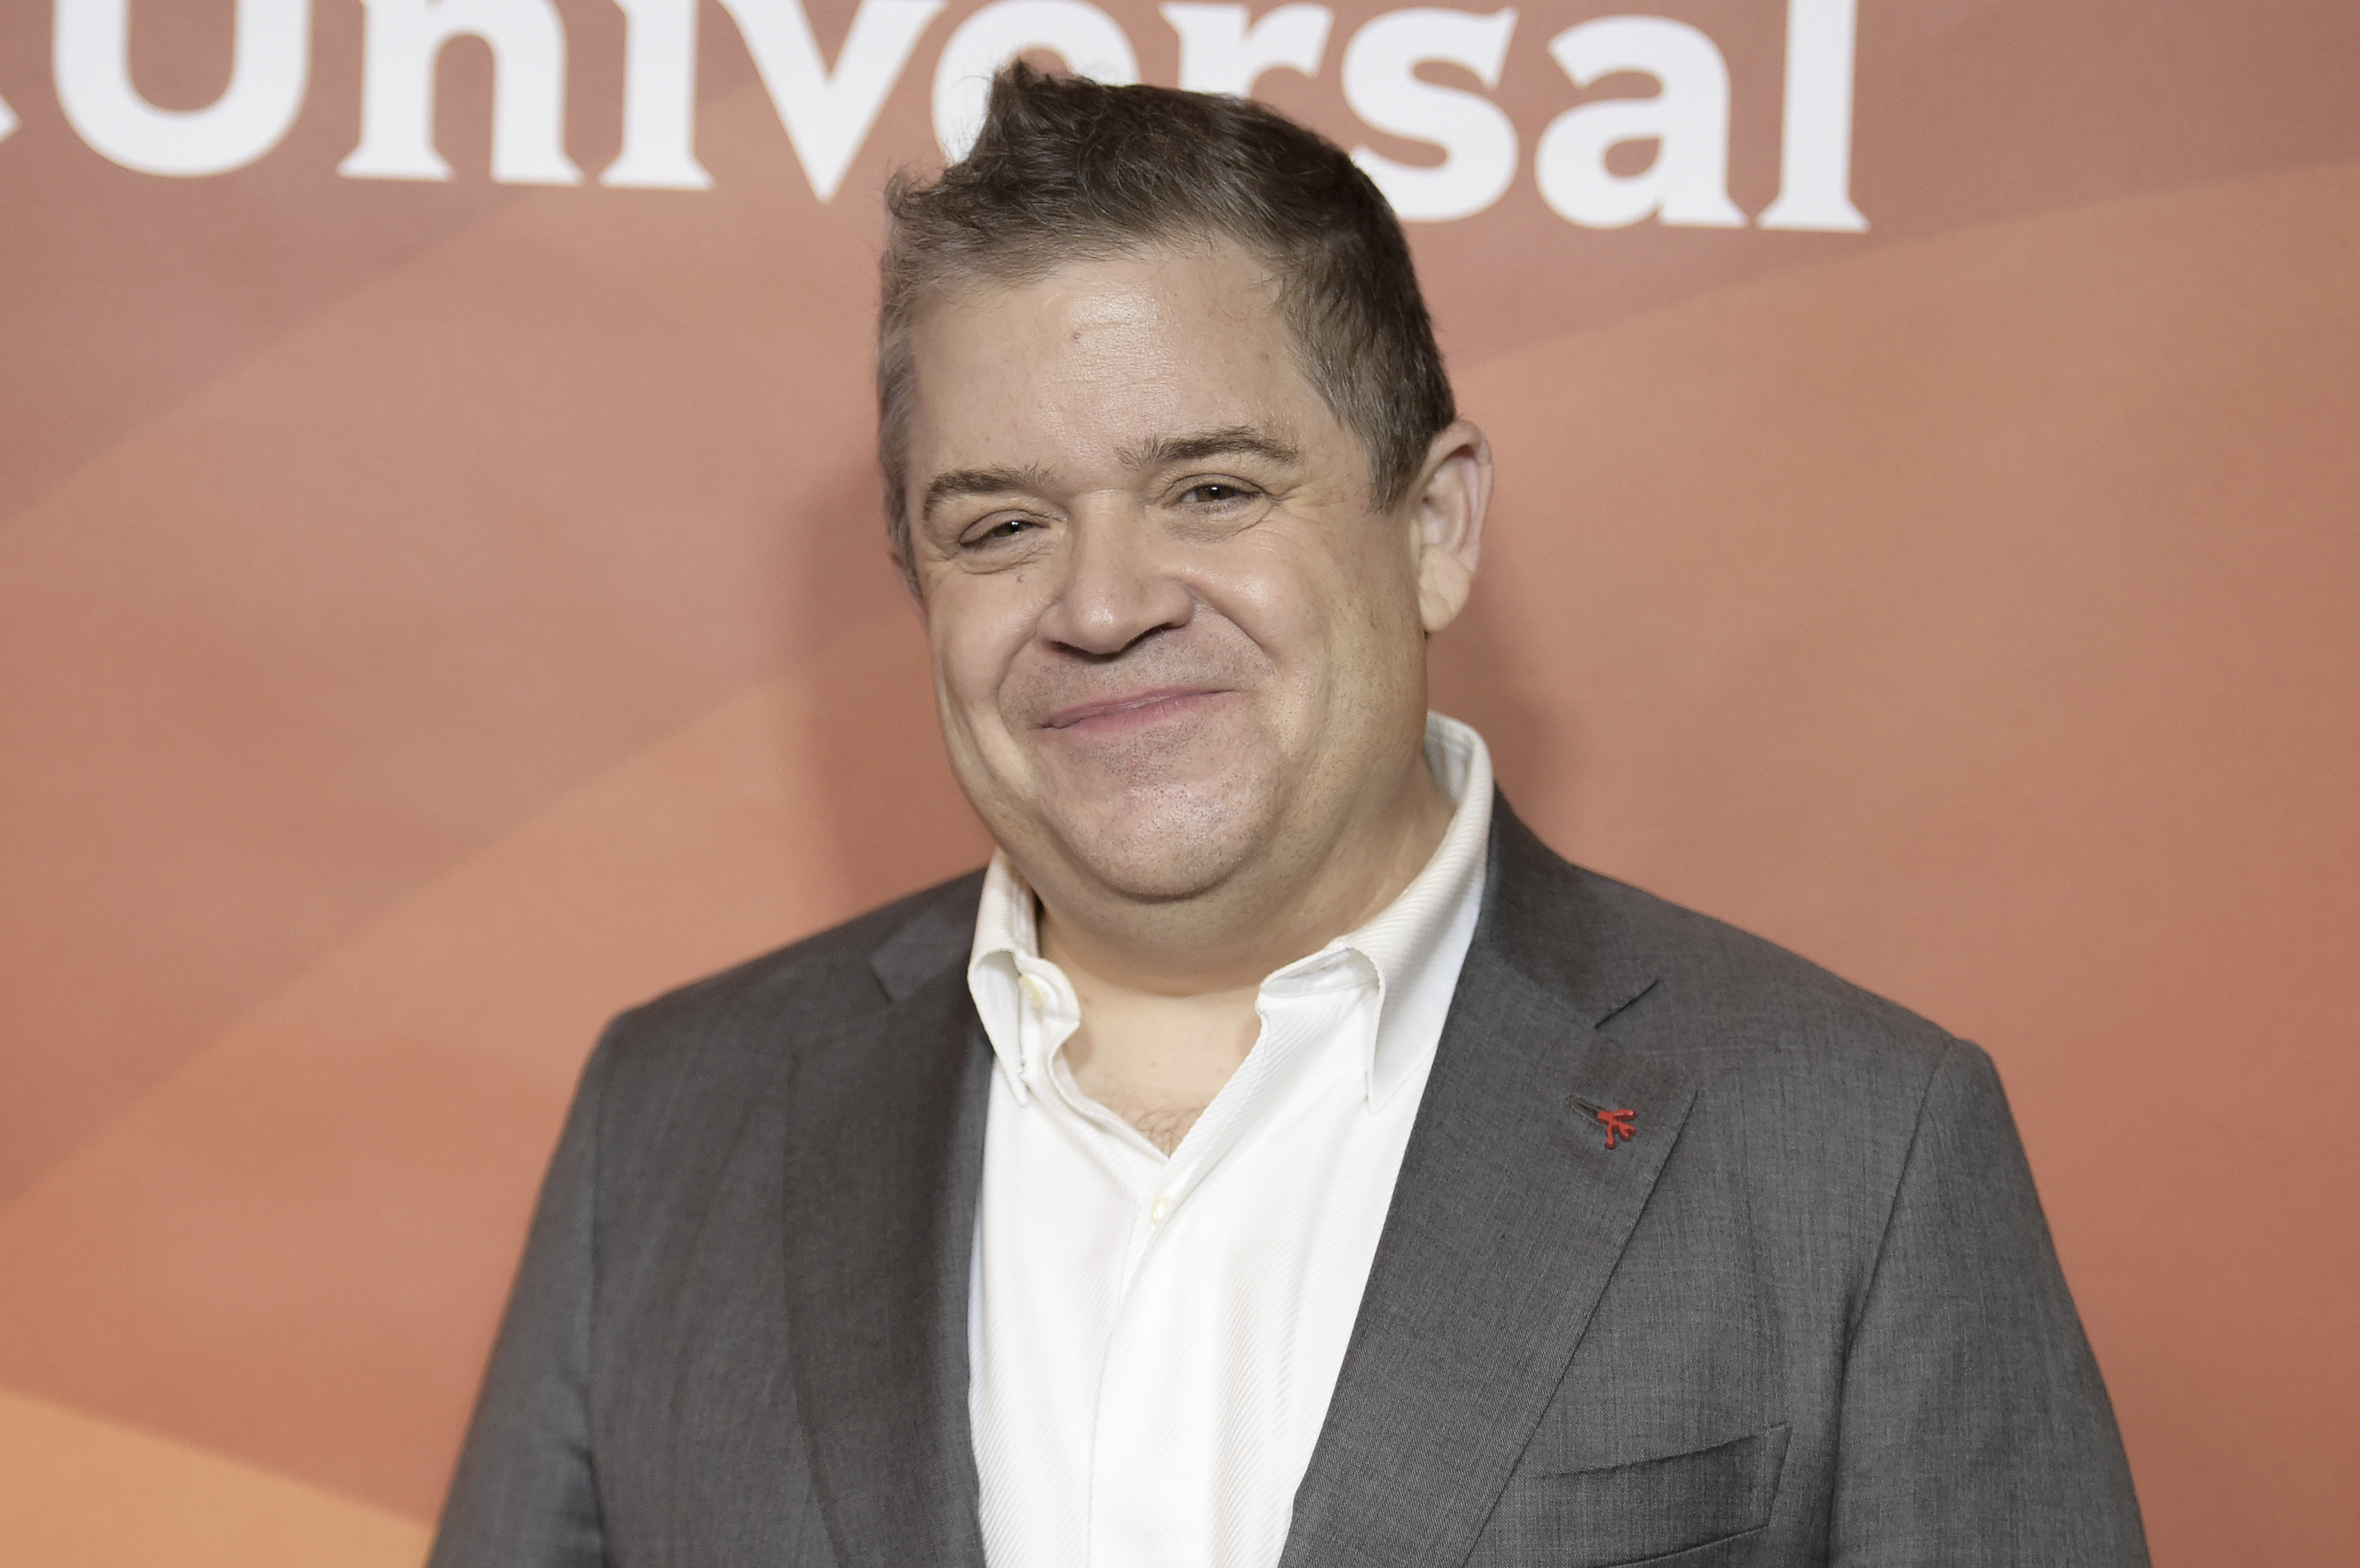 Patton Oswalt attends the red carpet event during the NBCUniversal Television Critics Association Winter Press Tour on Tuesday, Jan. 9, 2018, in Pasadena, Calif. (Photo by Richard Shotwell/Invision/AP)